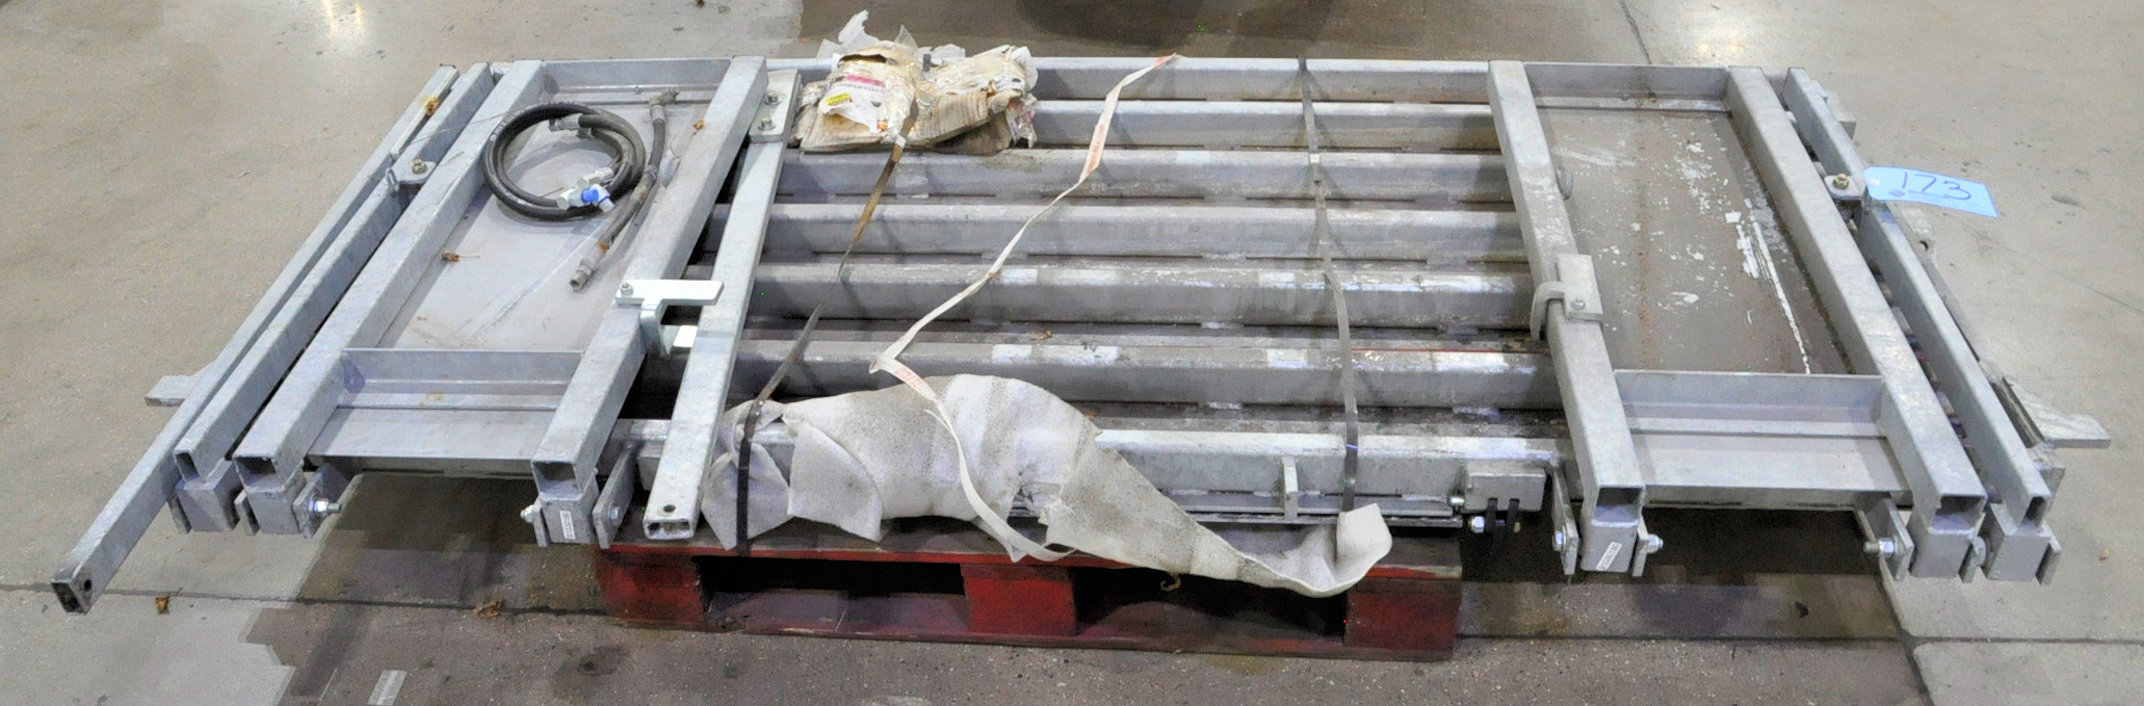 Waltco Aluminum Truck Lift Gate Assembly on (1) Pallet